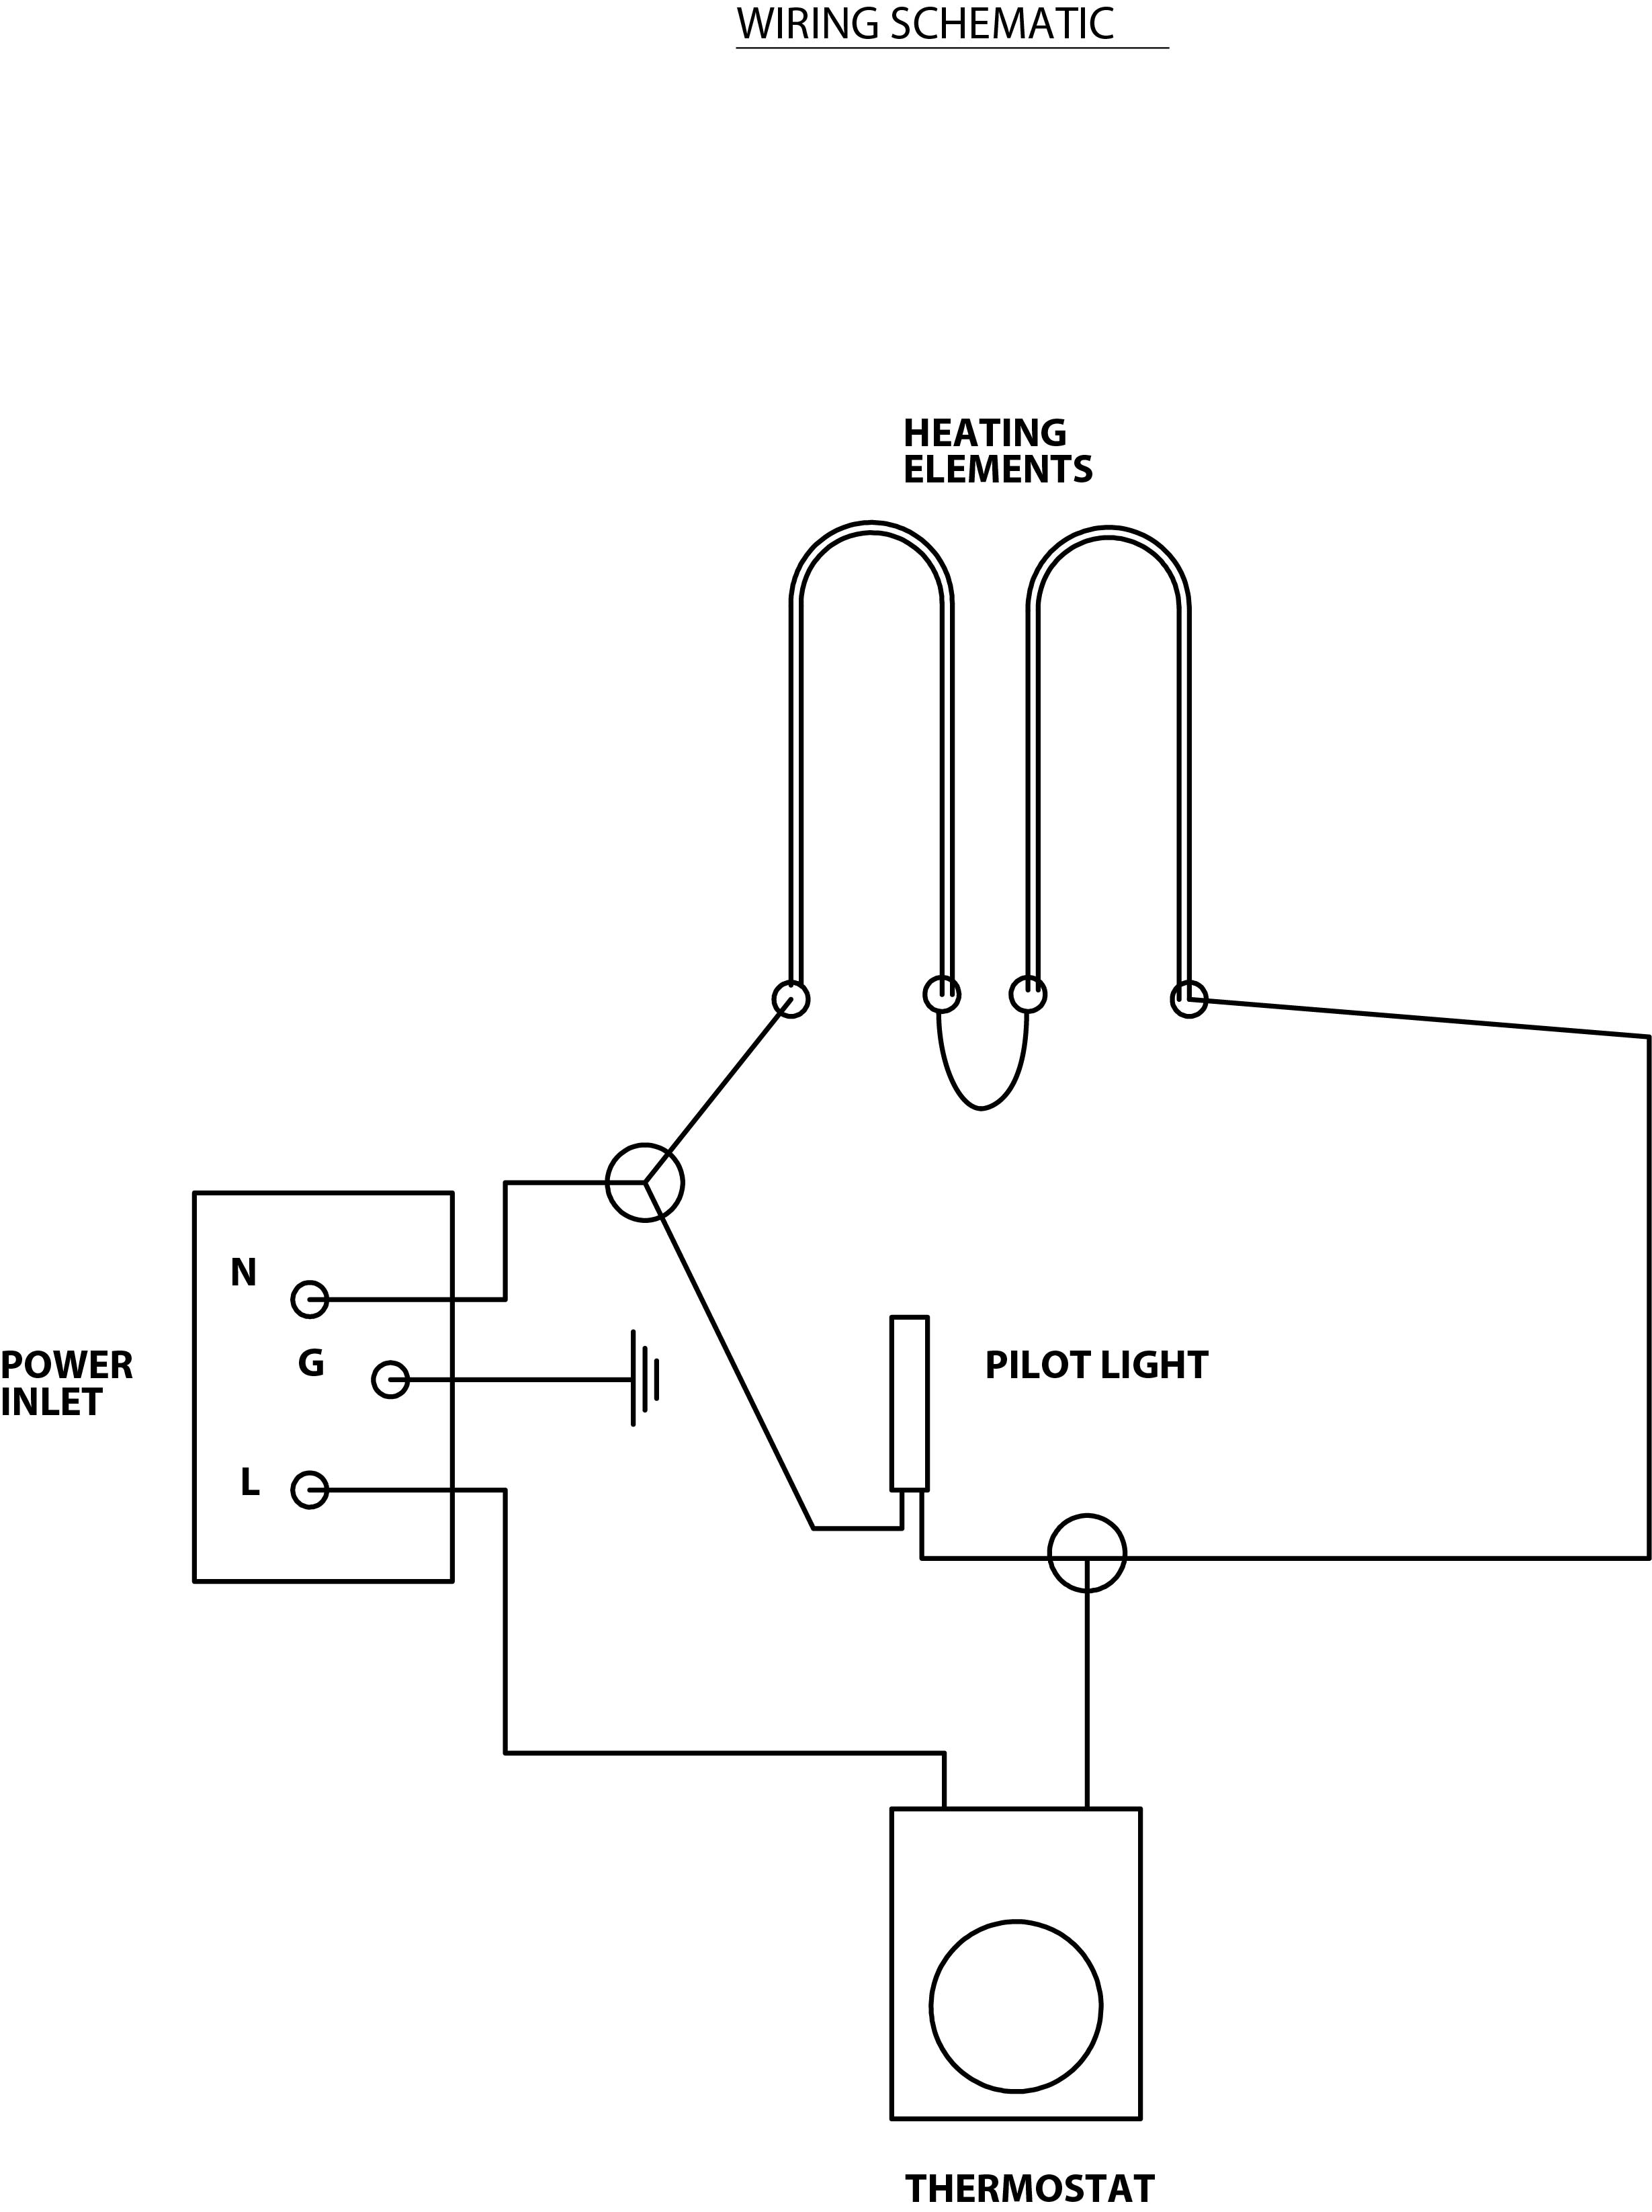 Wiring 240v Oven Diagram Schematics 208 3 Phase Basic Schemes Receptacle Type 4 Drywire Phoenix International